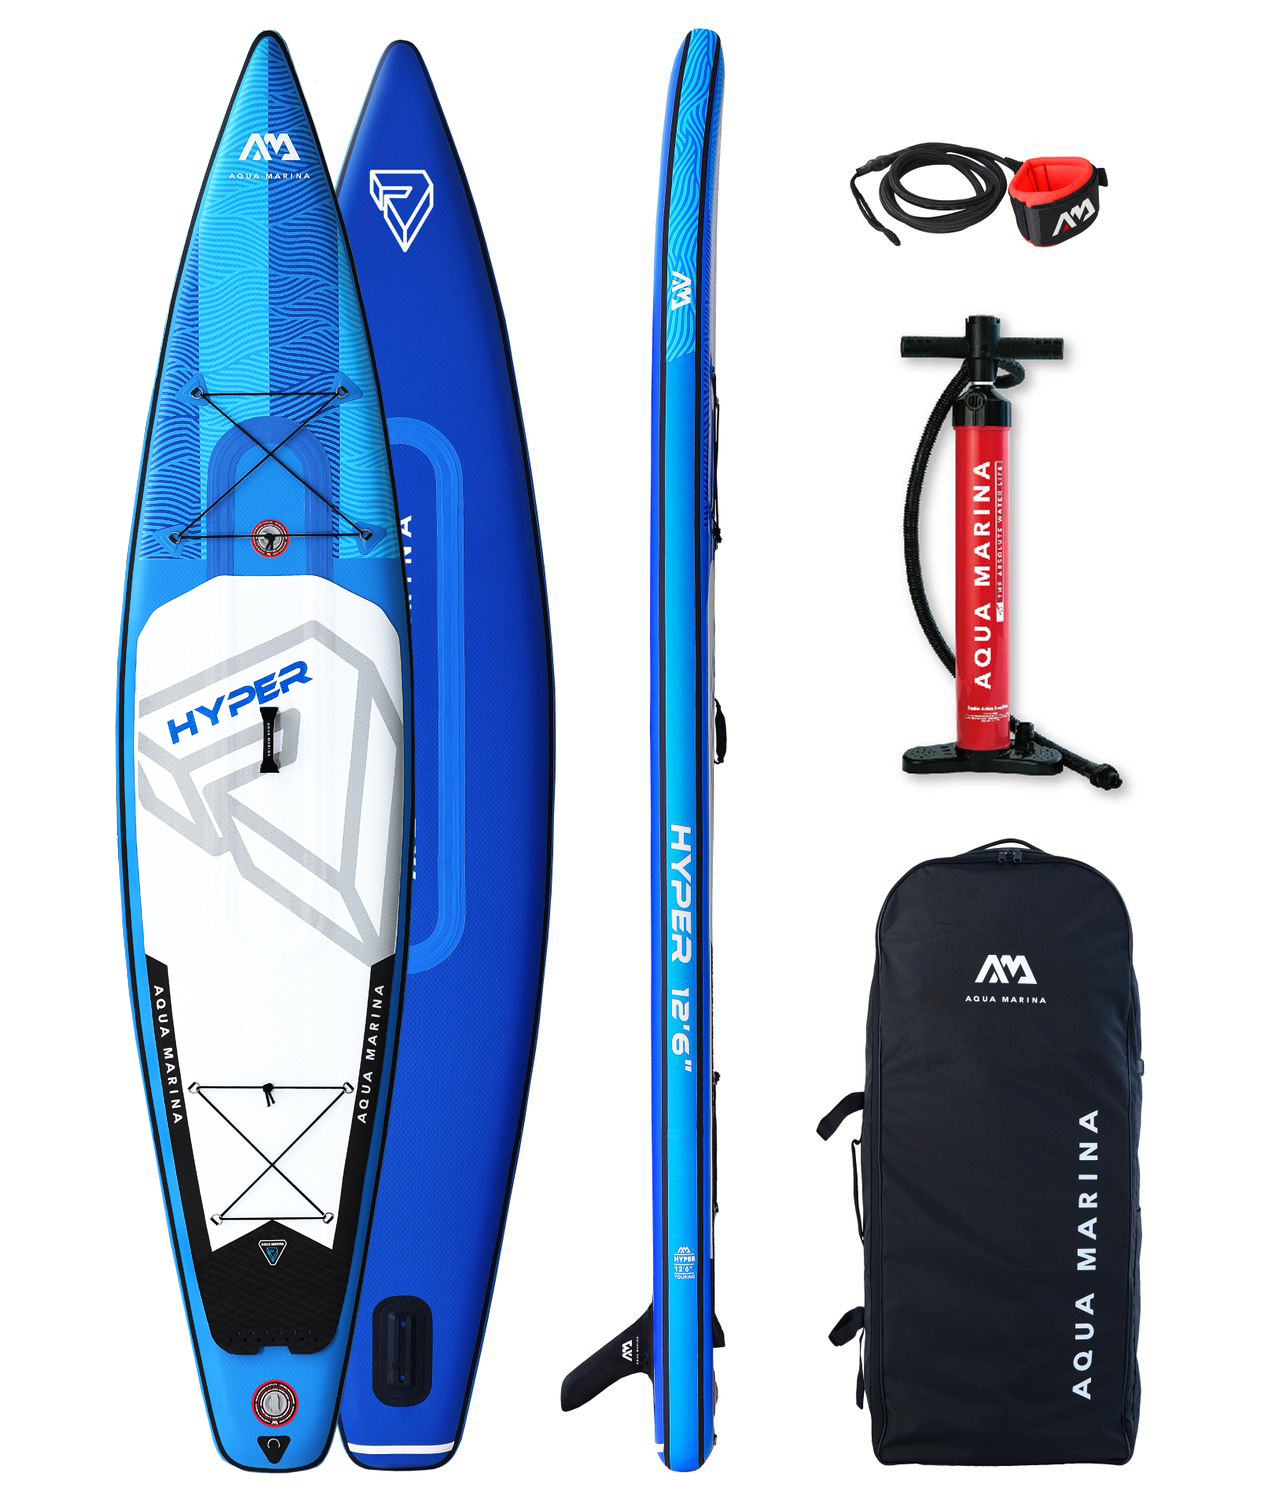 Touring Stand Up Paddle HYPER 381 cm